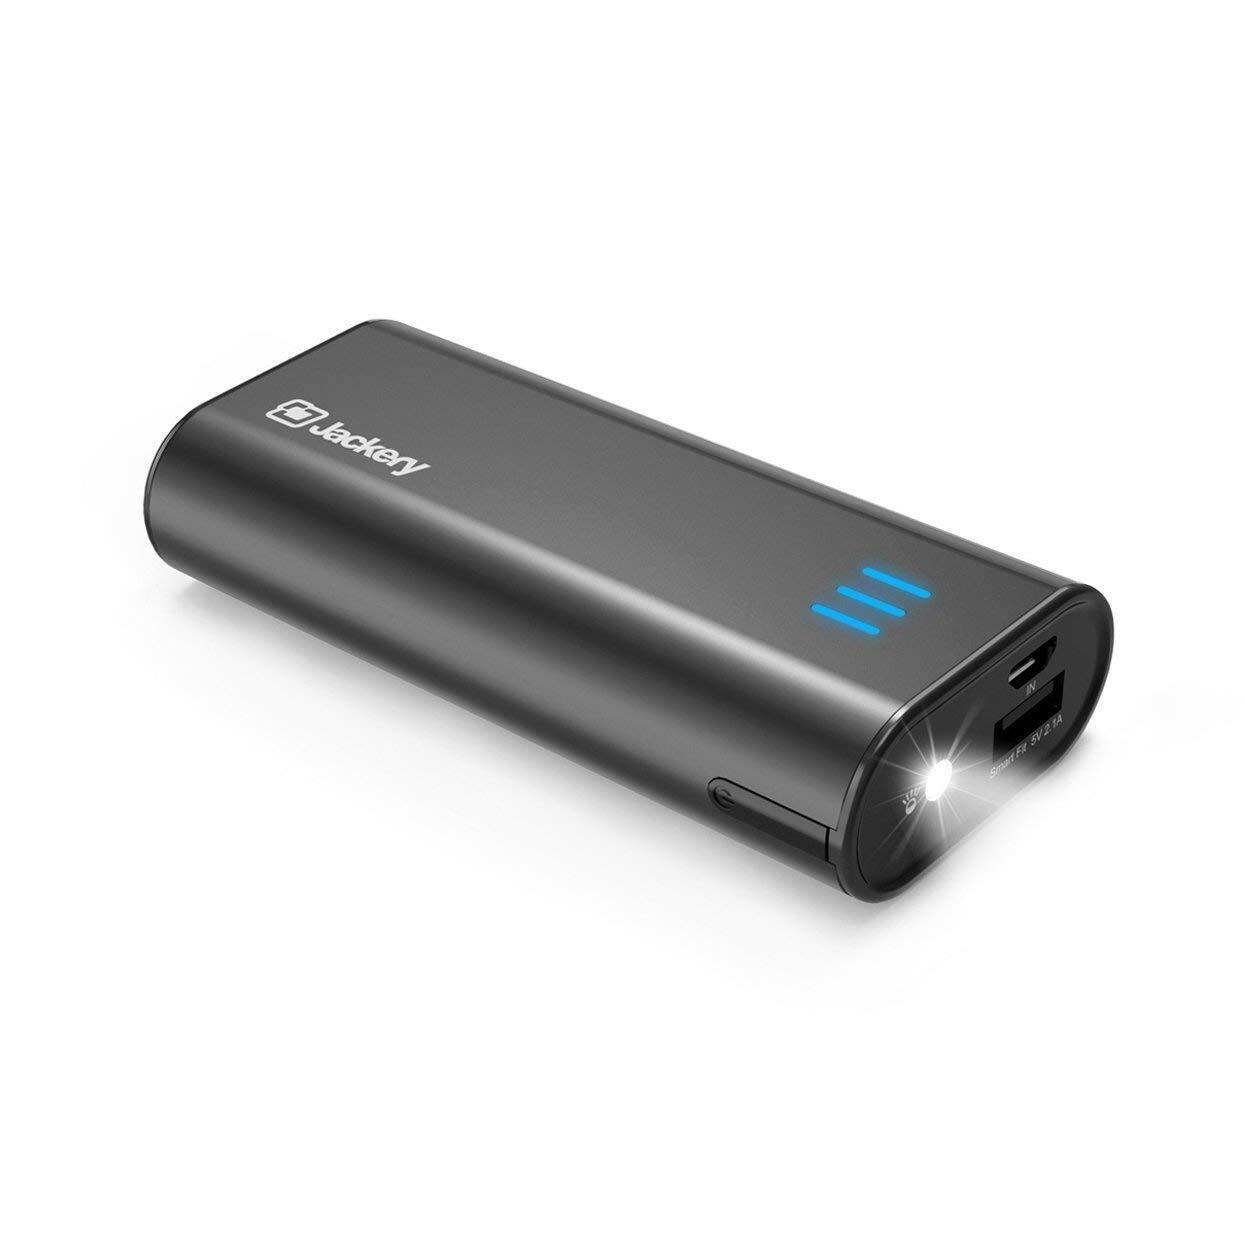 Jackery Portable Charger Bar 6000mAh Pocket-Sized External Battery Pack.jpg